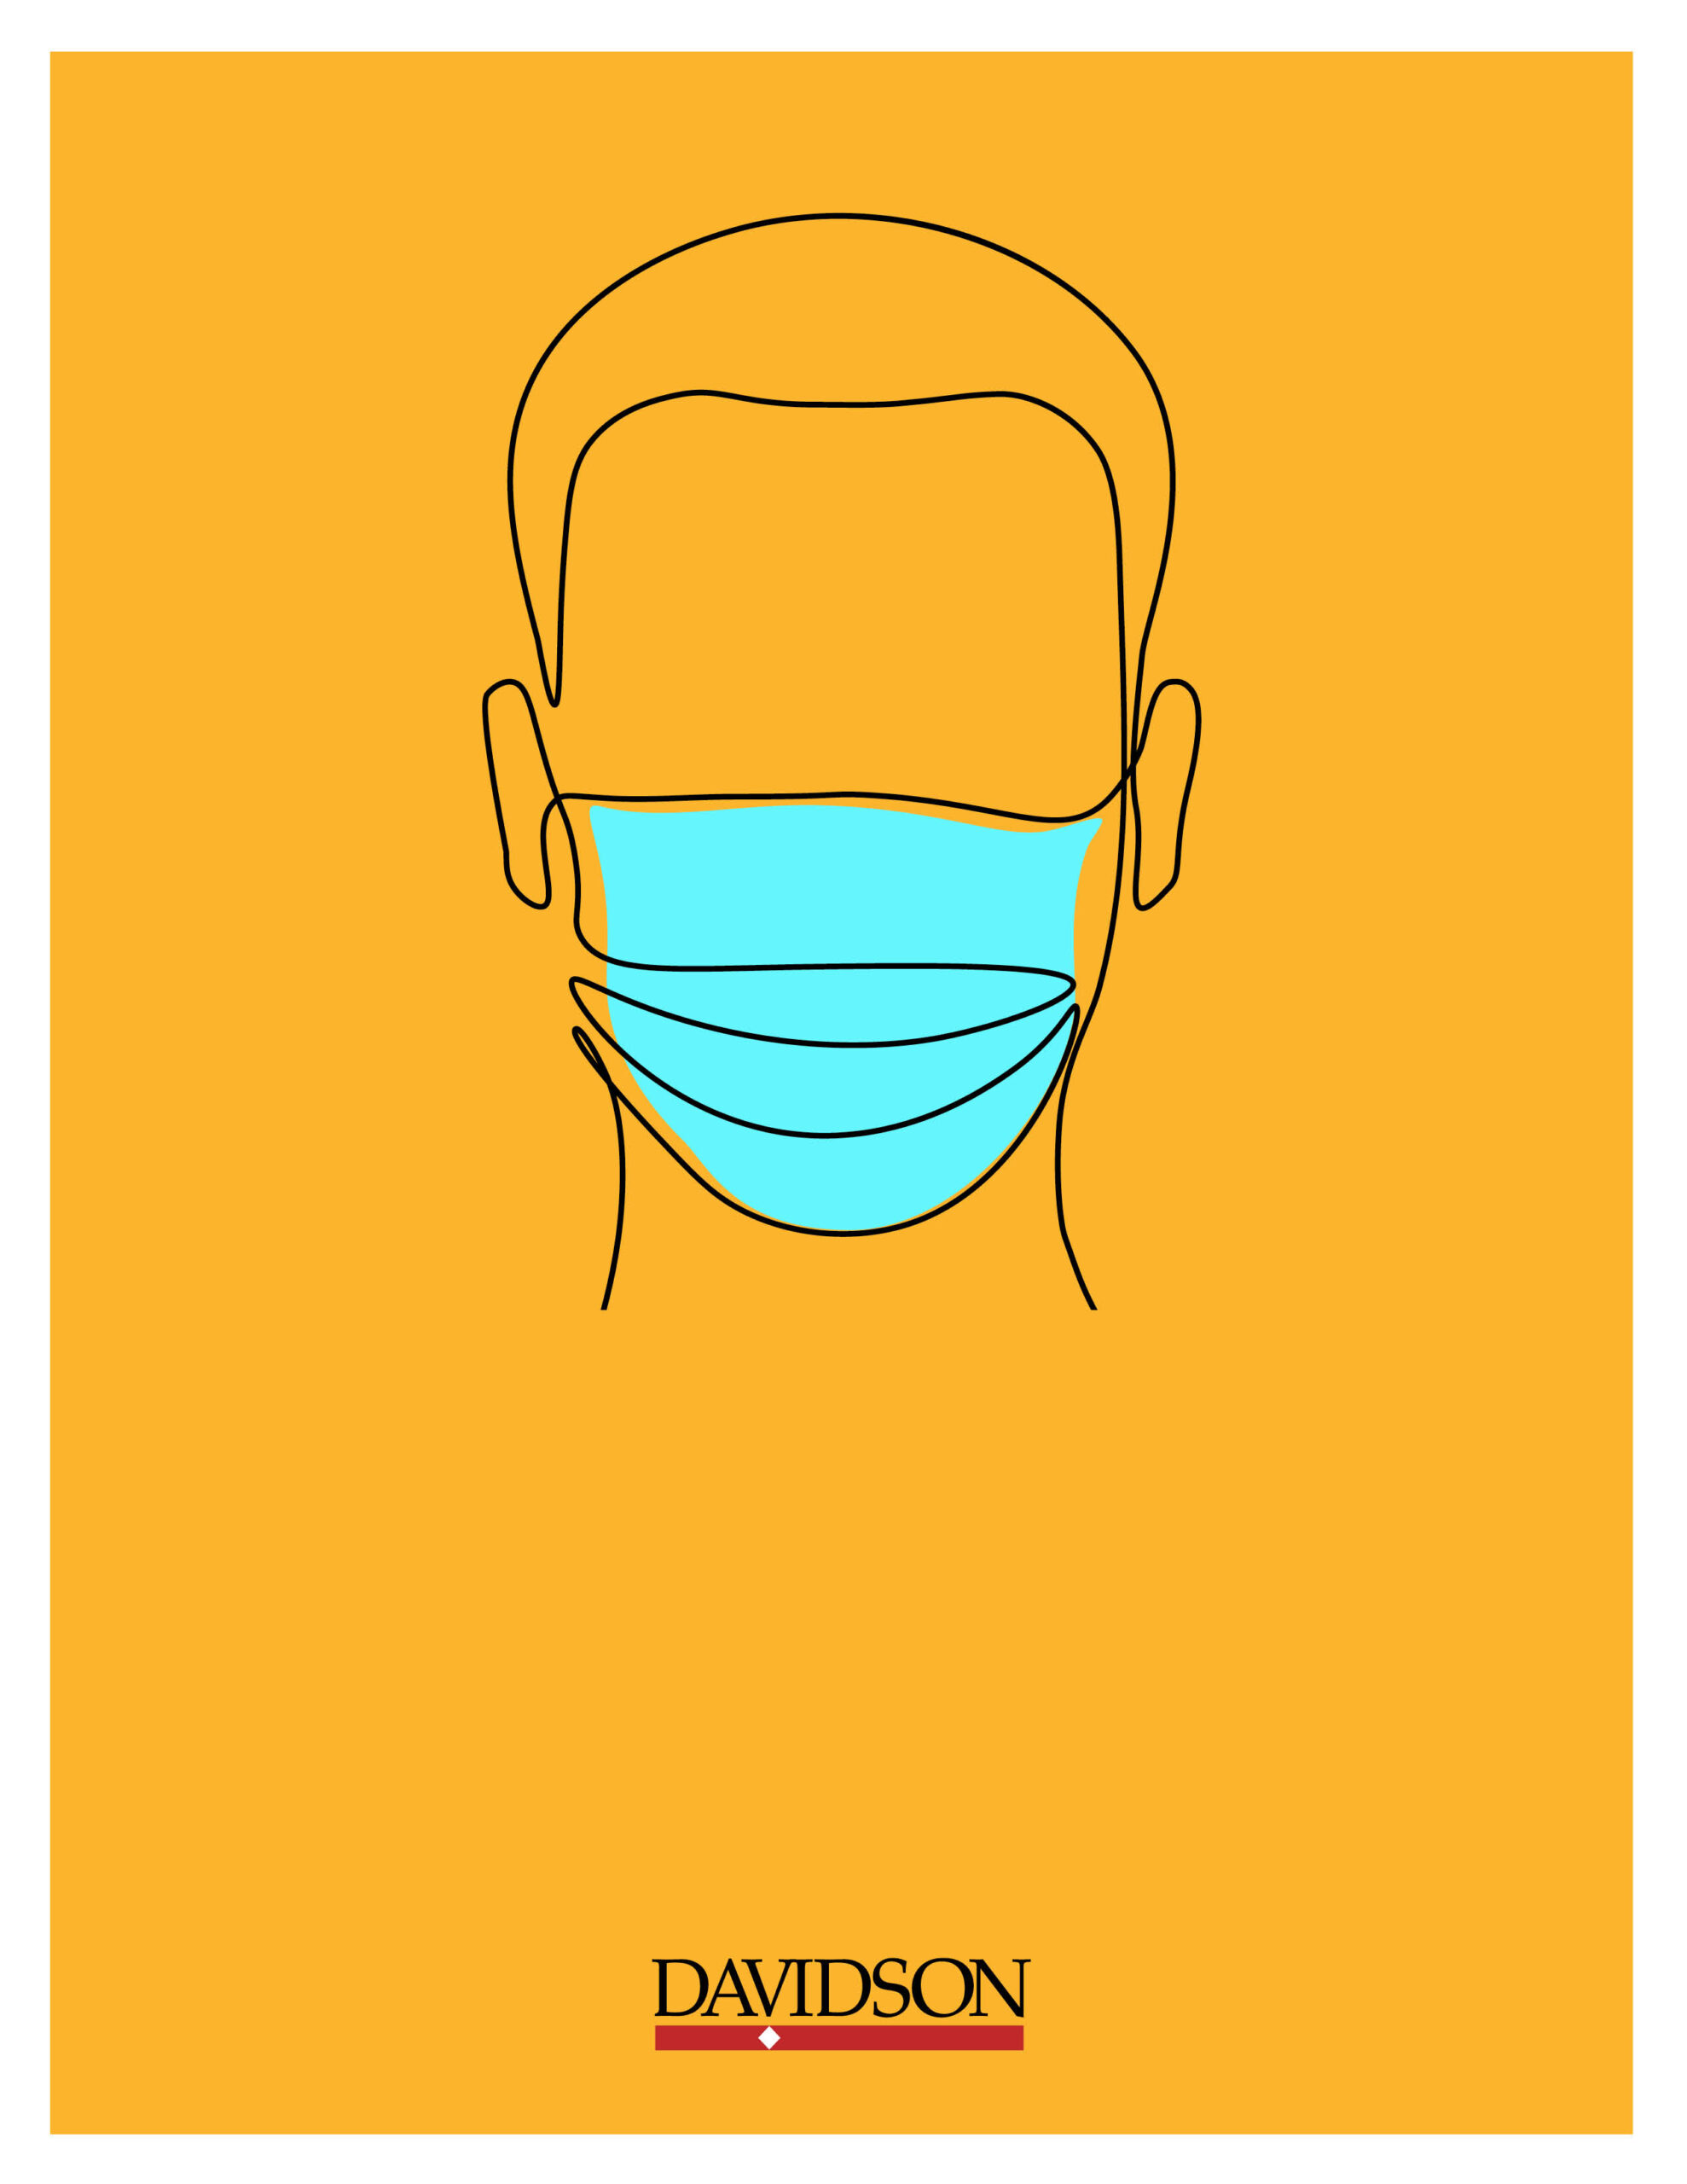 Yellow Background, Outline of Face with Mask